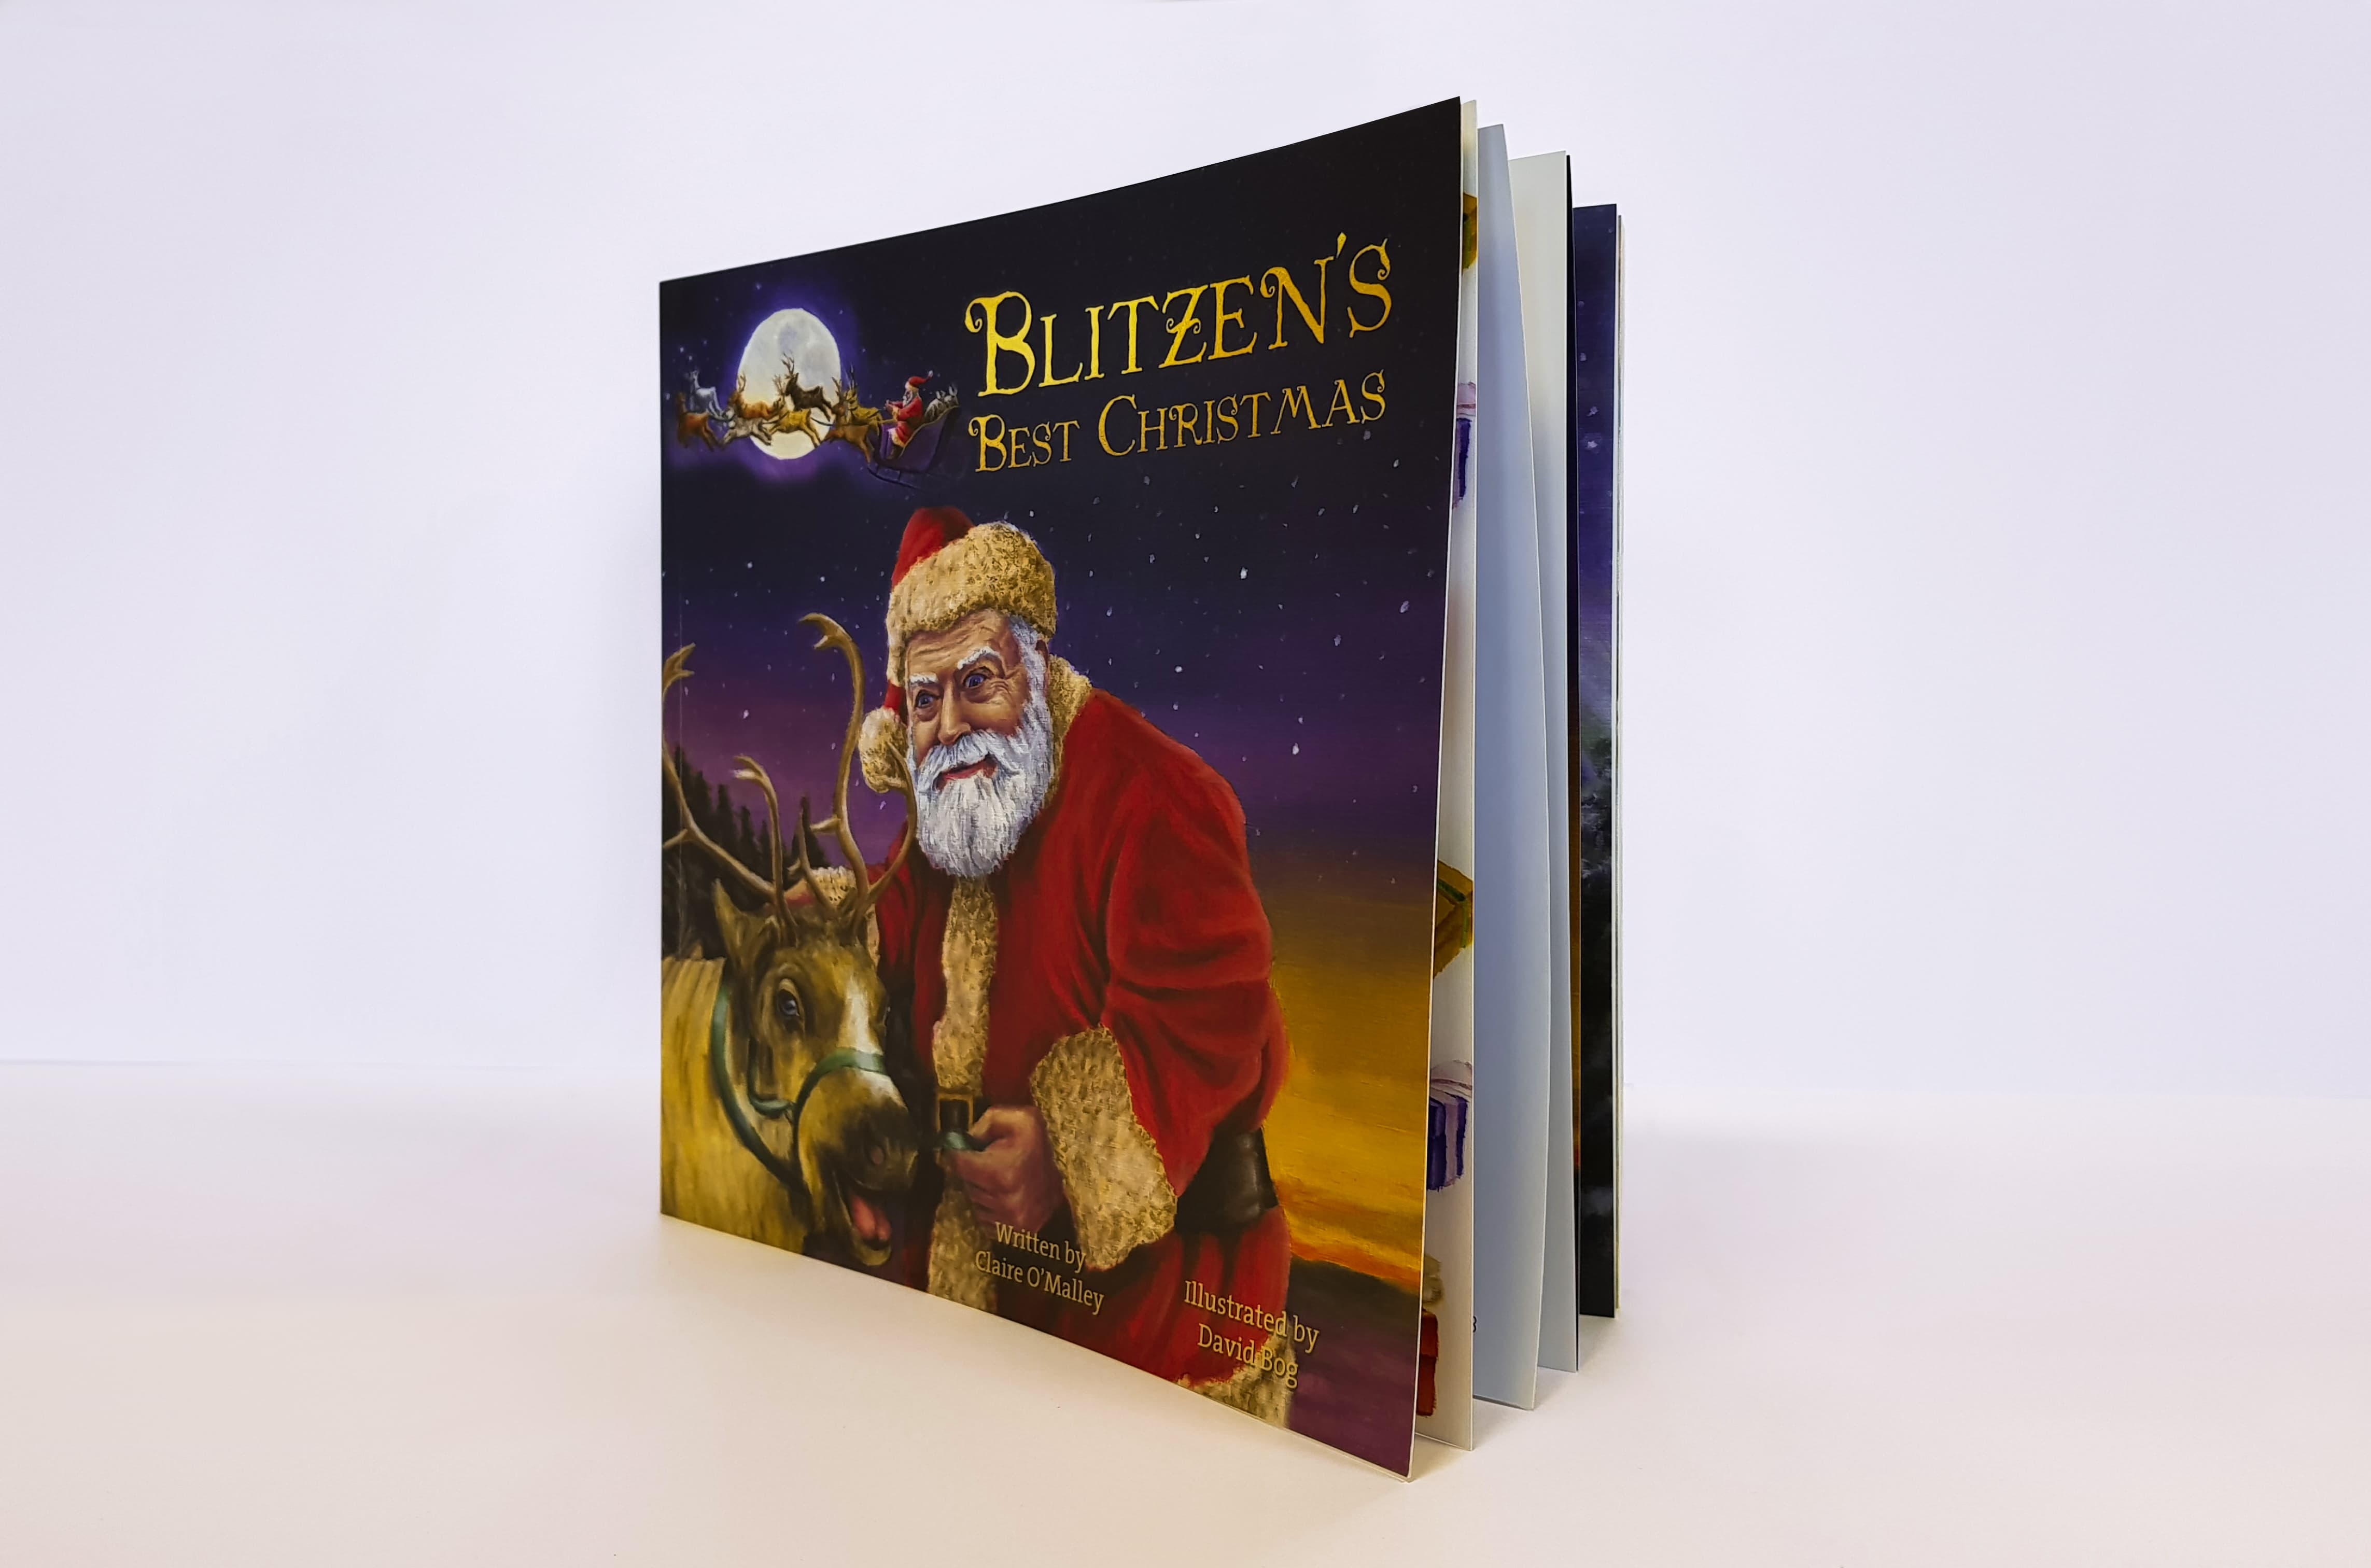 Blitzens Best Christmas Book